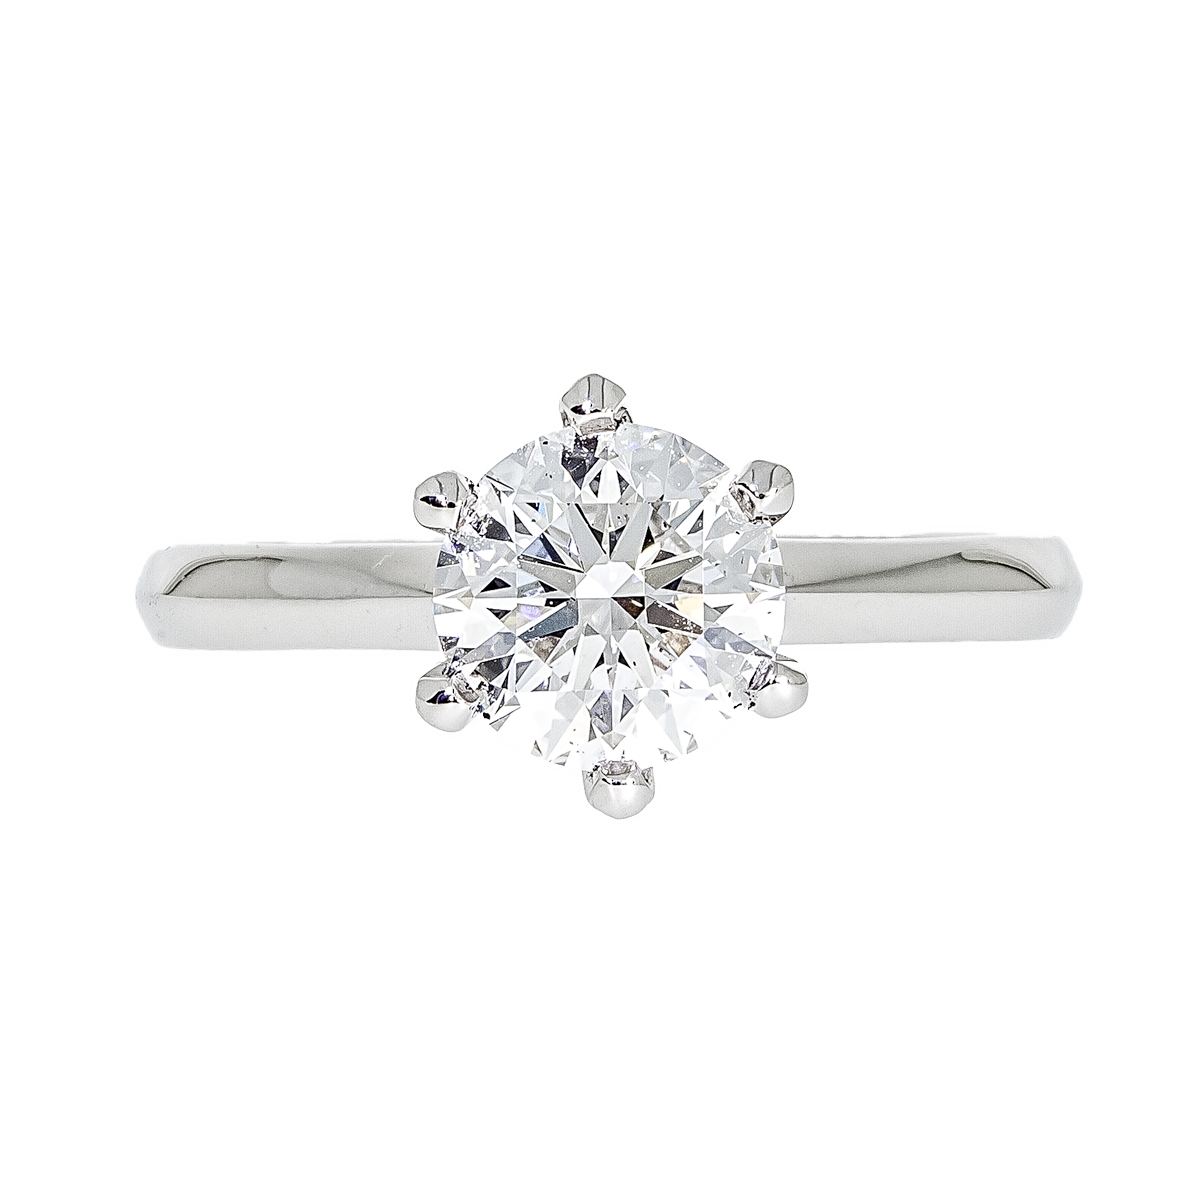 Brilliant-Cut Diamond Ring